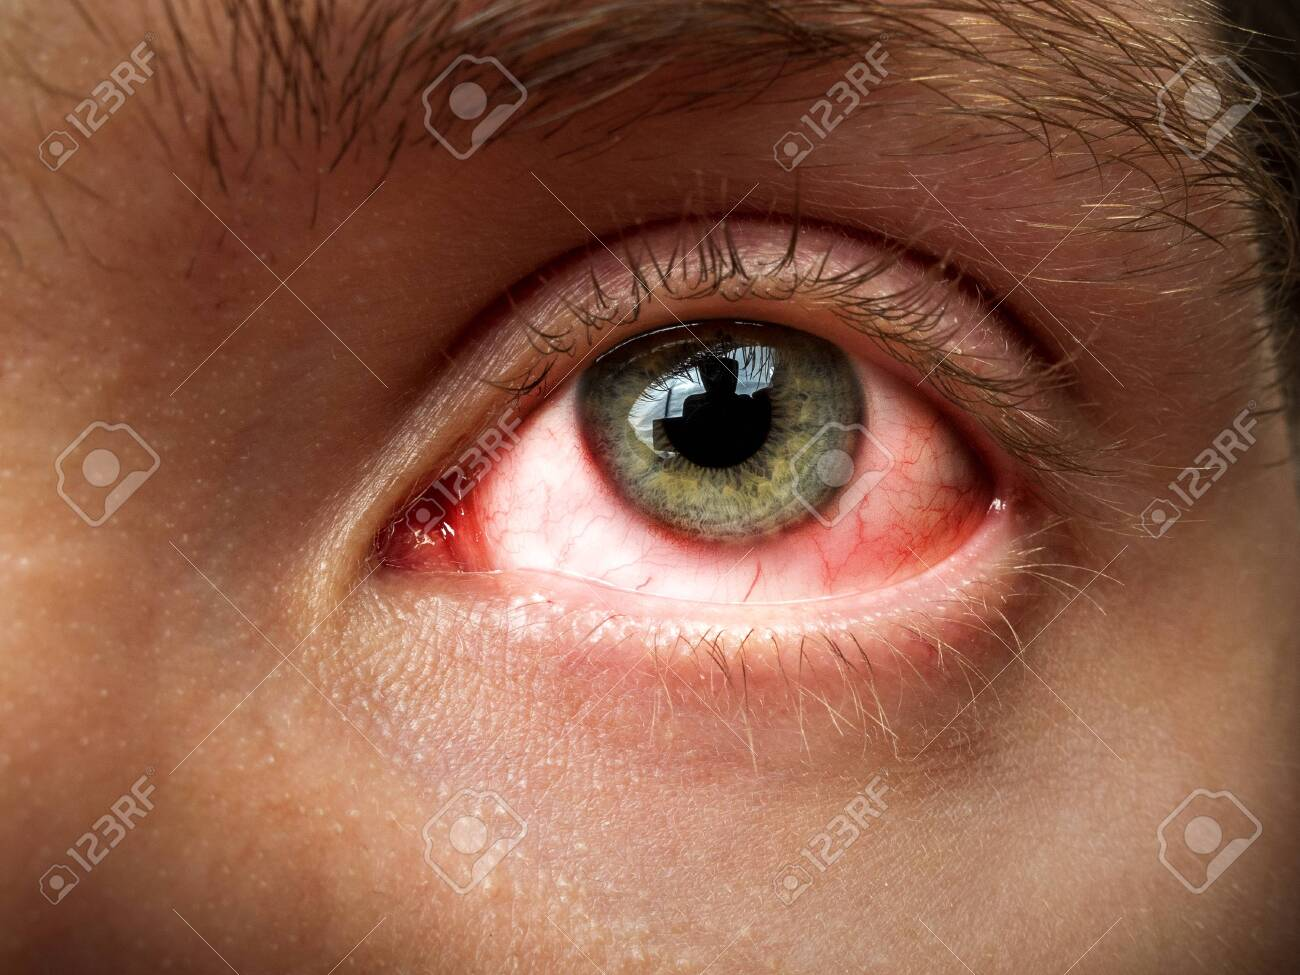 conjunctivitis, conjunctival inflammation, red eyes, infection and inflammation, close up eye - 146579158